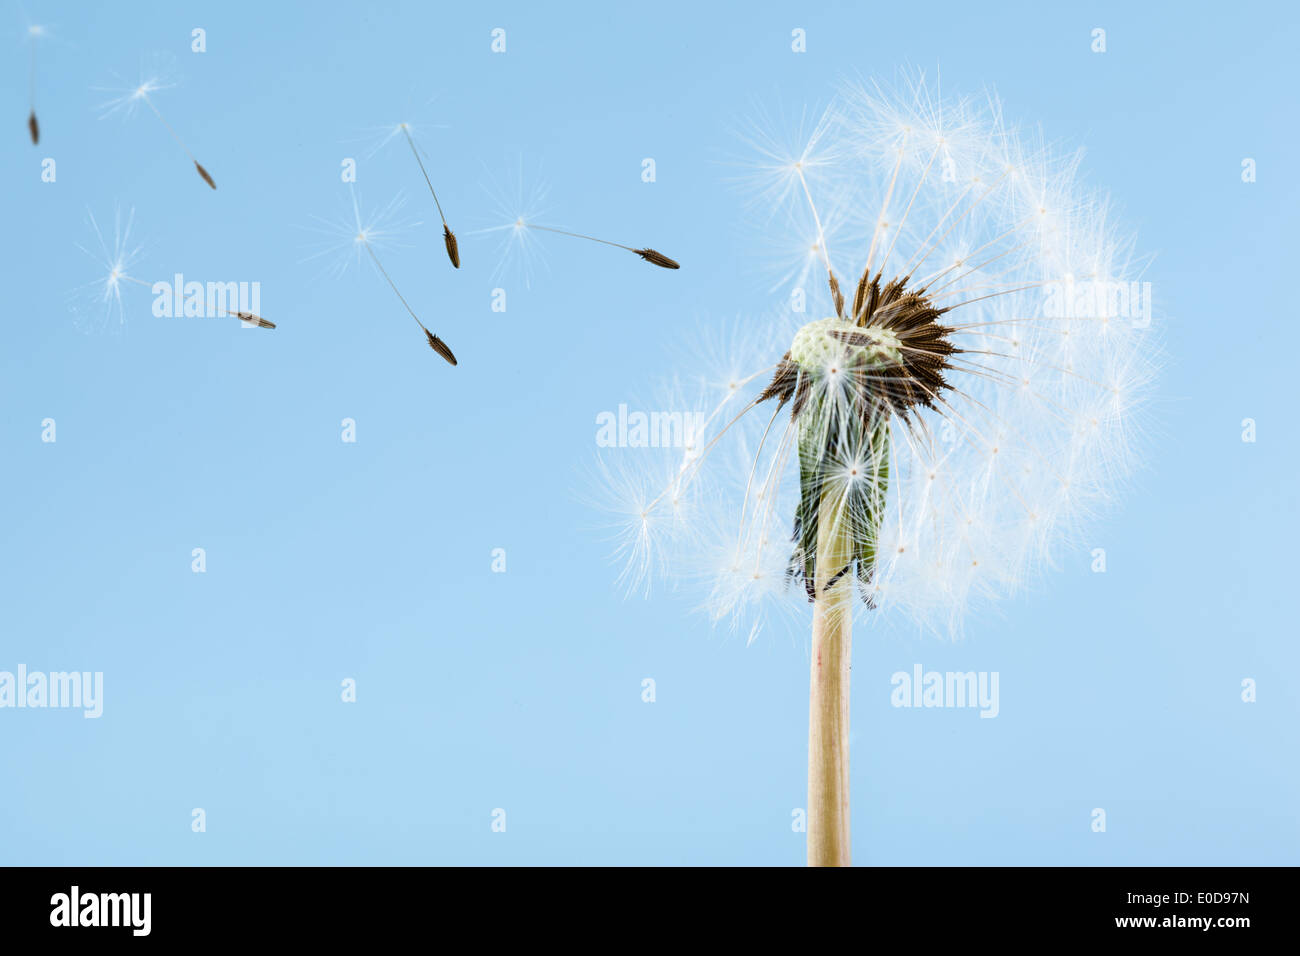 macro shot of a dandelion over a blue background with wind blowing seeds away - Stock Image